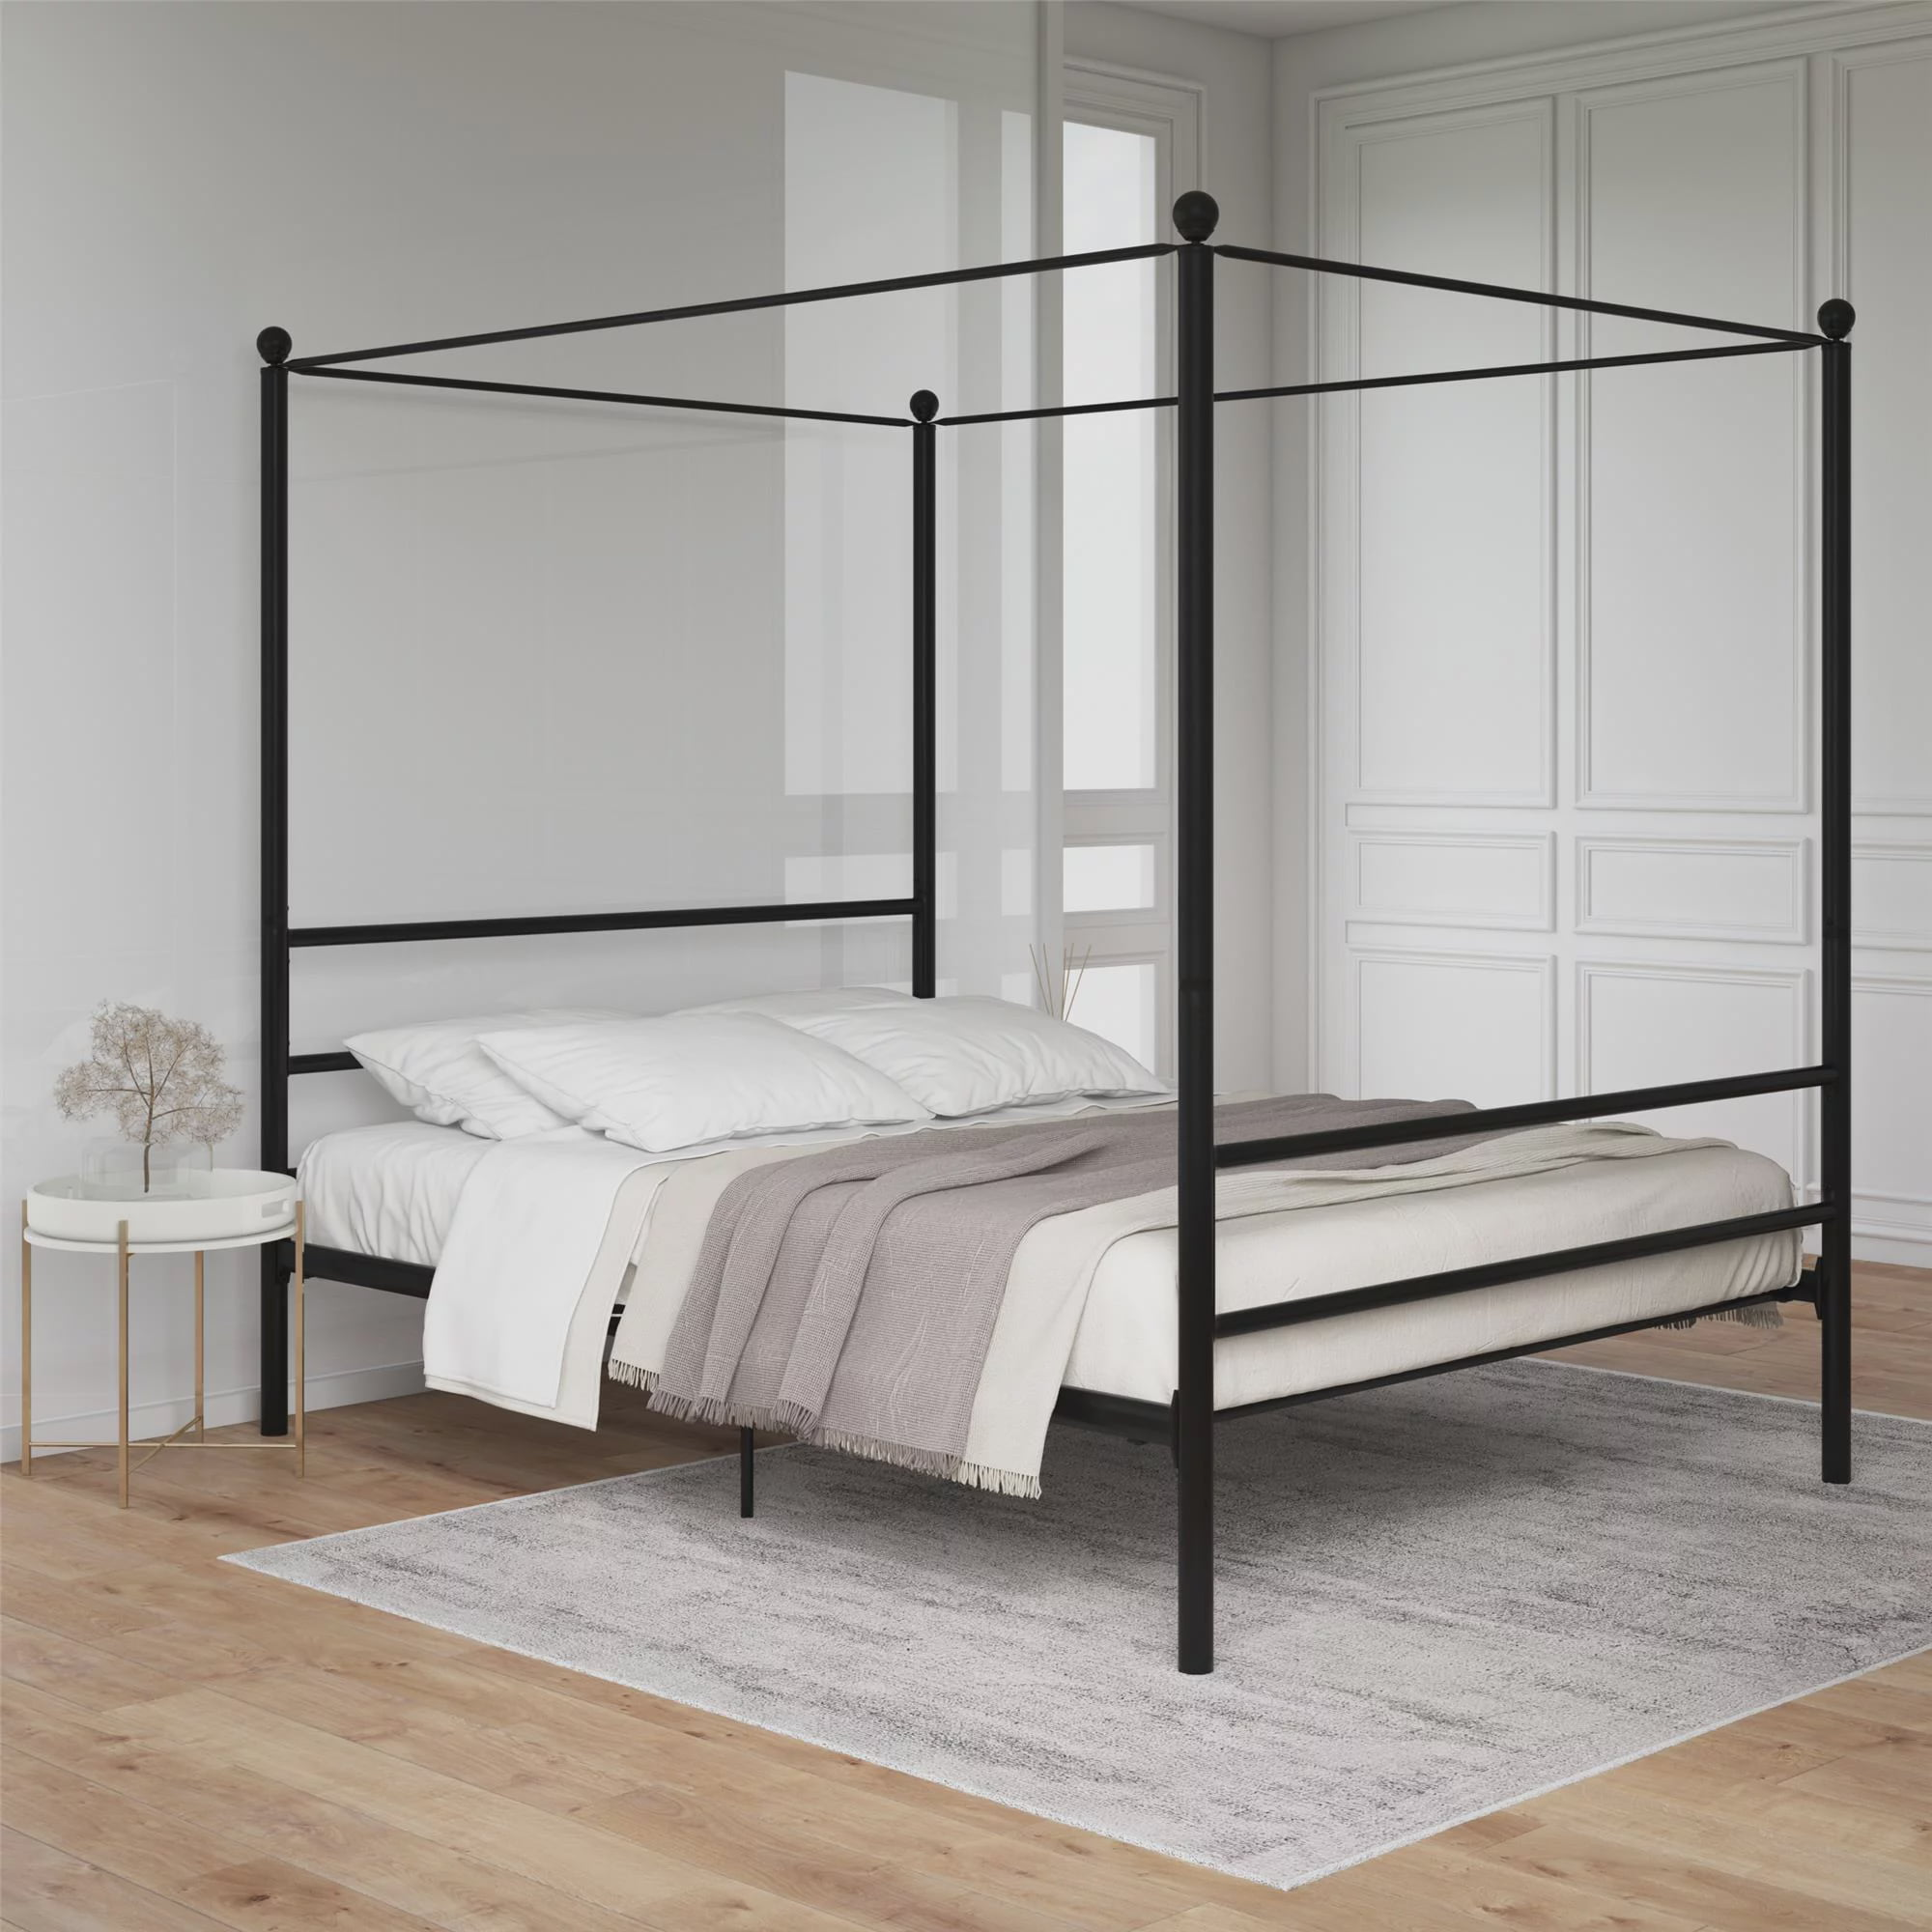 Mainstays Queen Black Metal Canopy Bed Multiple Options Available Walmart Com Walmart Com